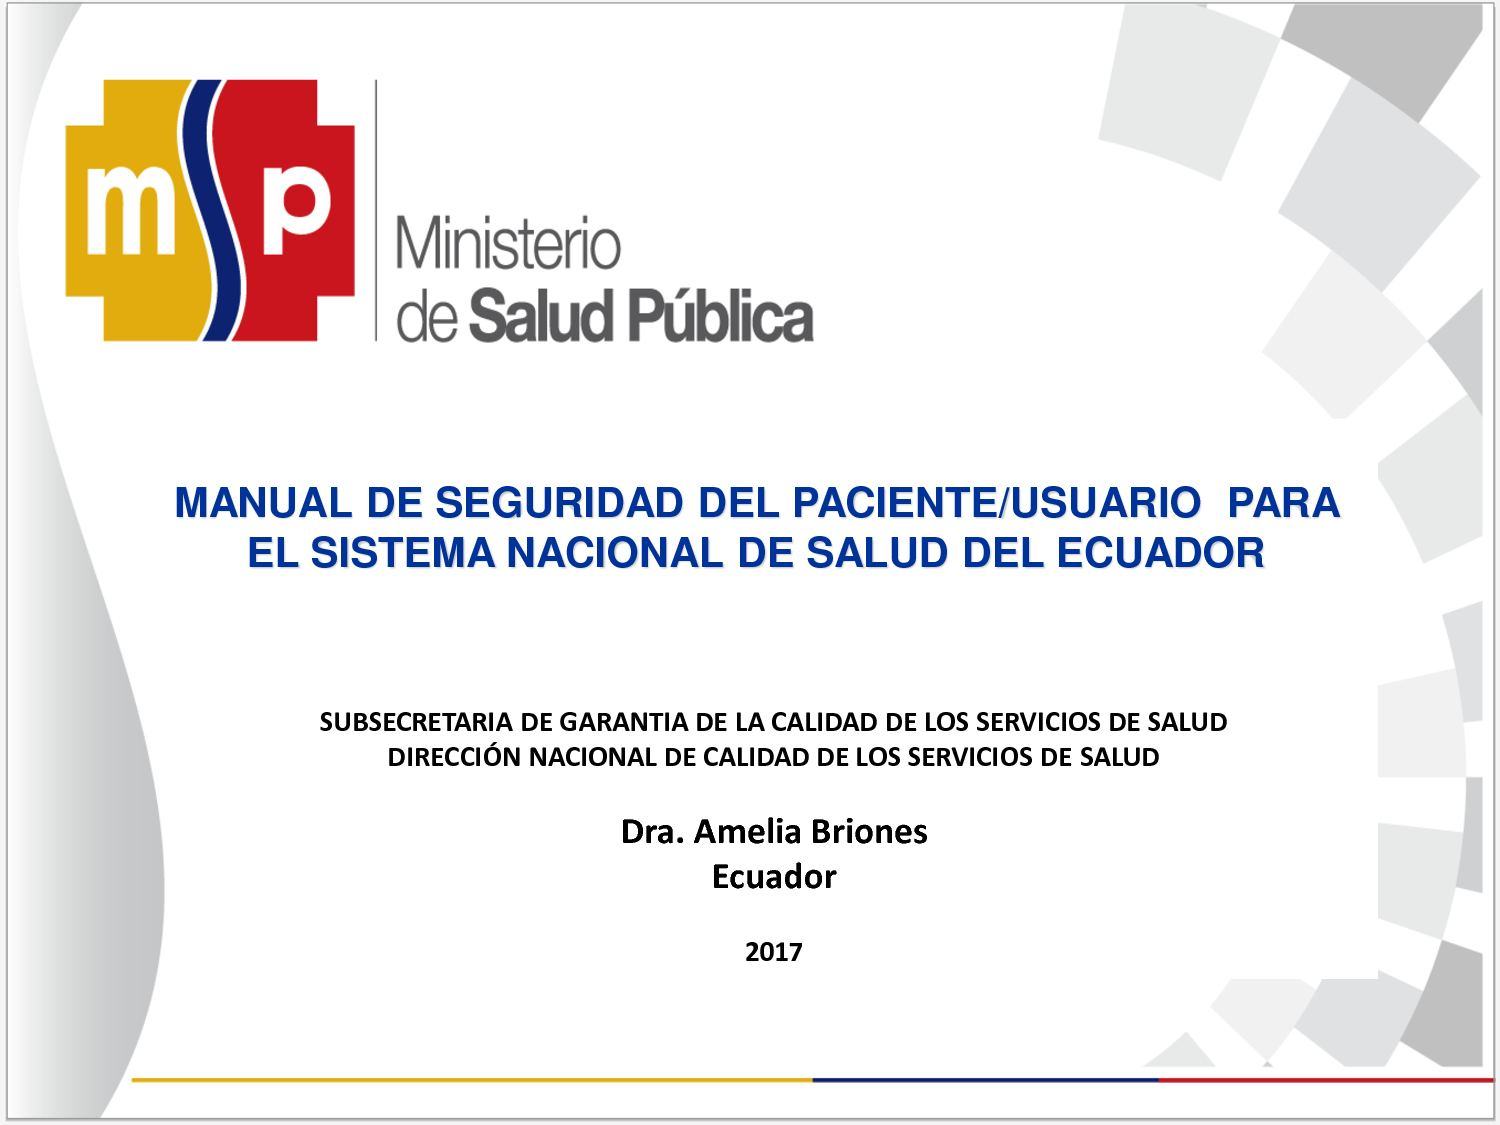 Manual De Seguridad Del Paciente - Ecuador -